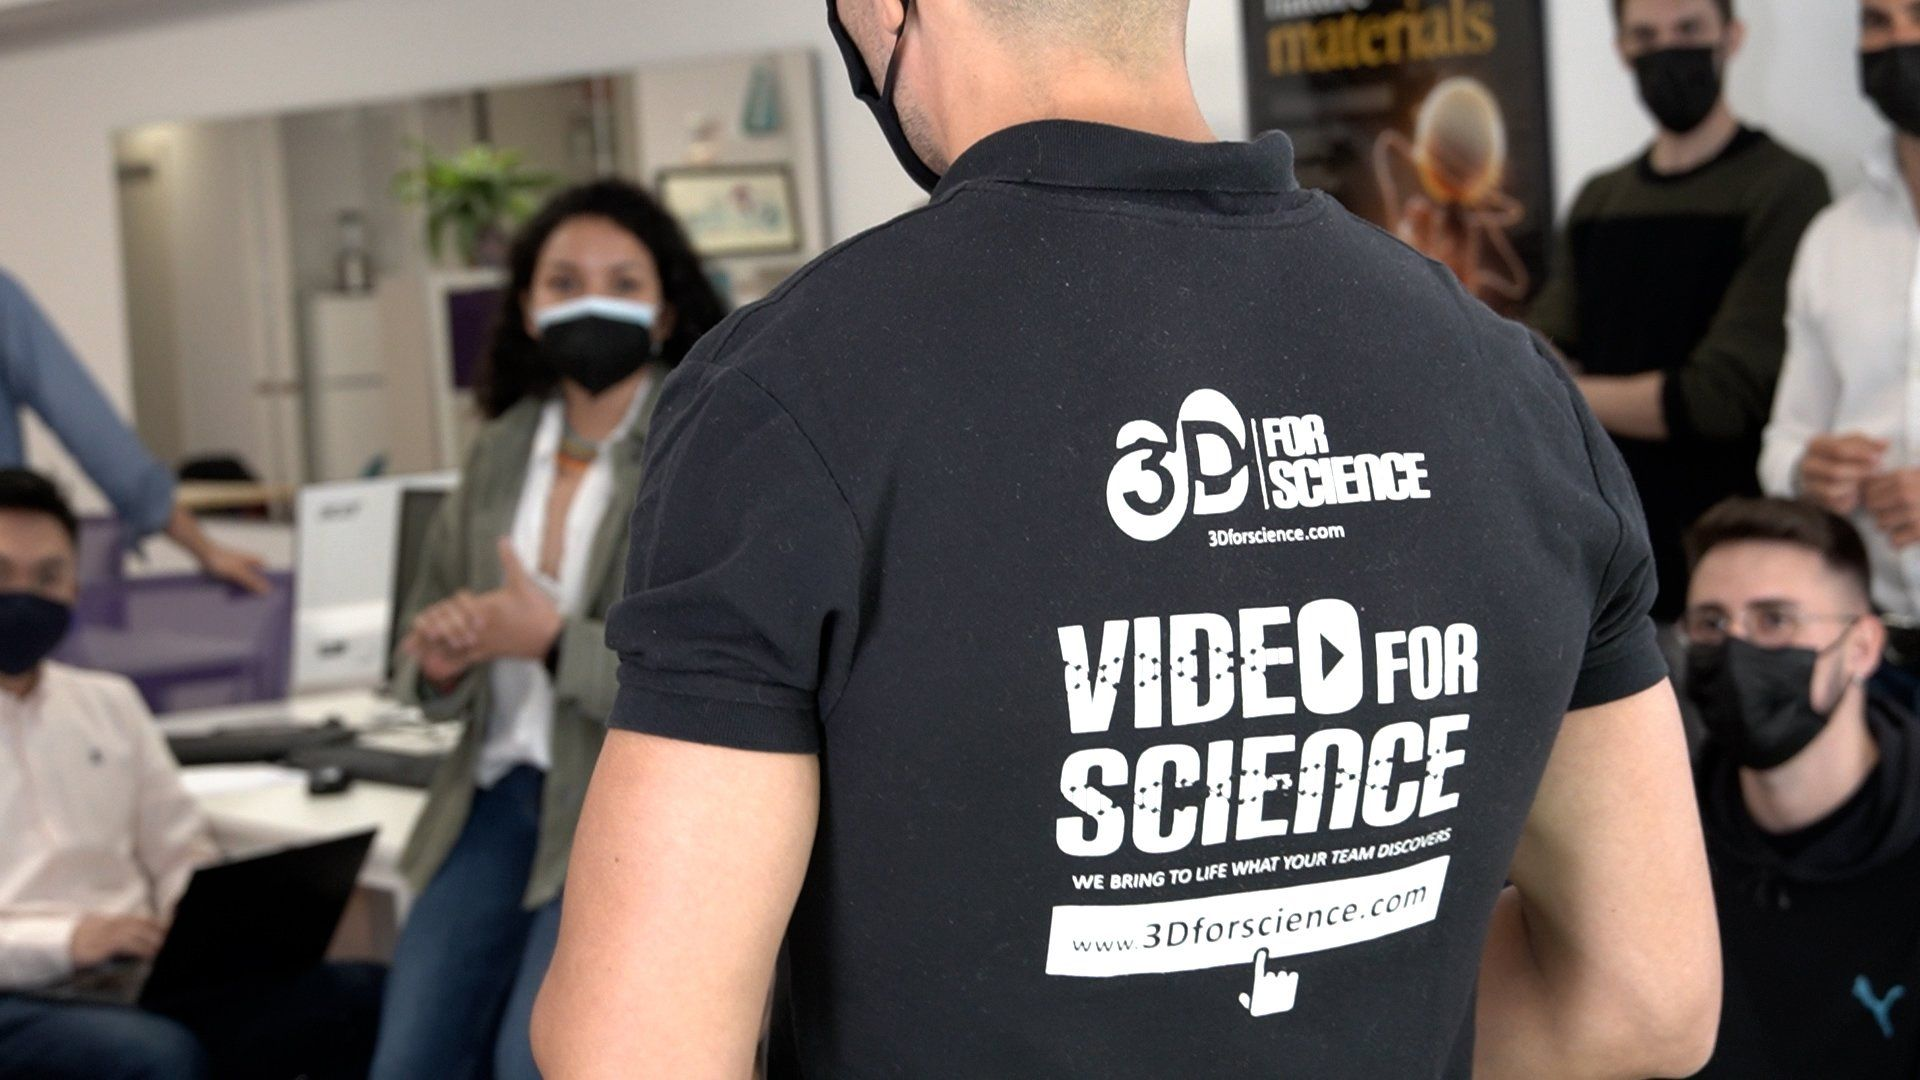 3dforscience video for science